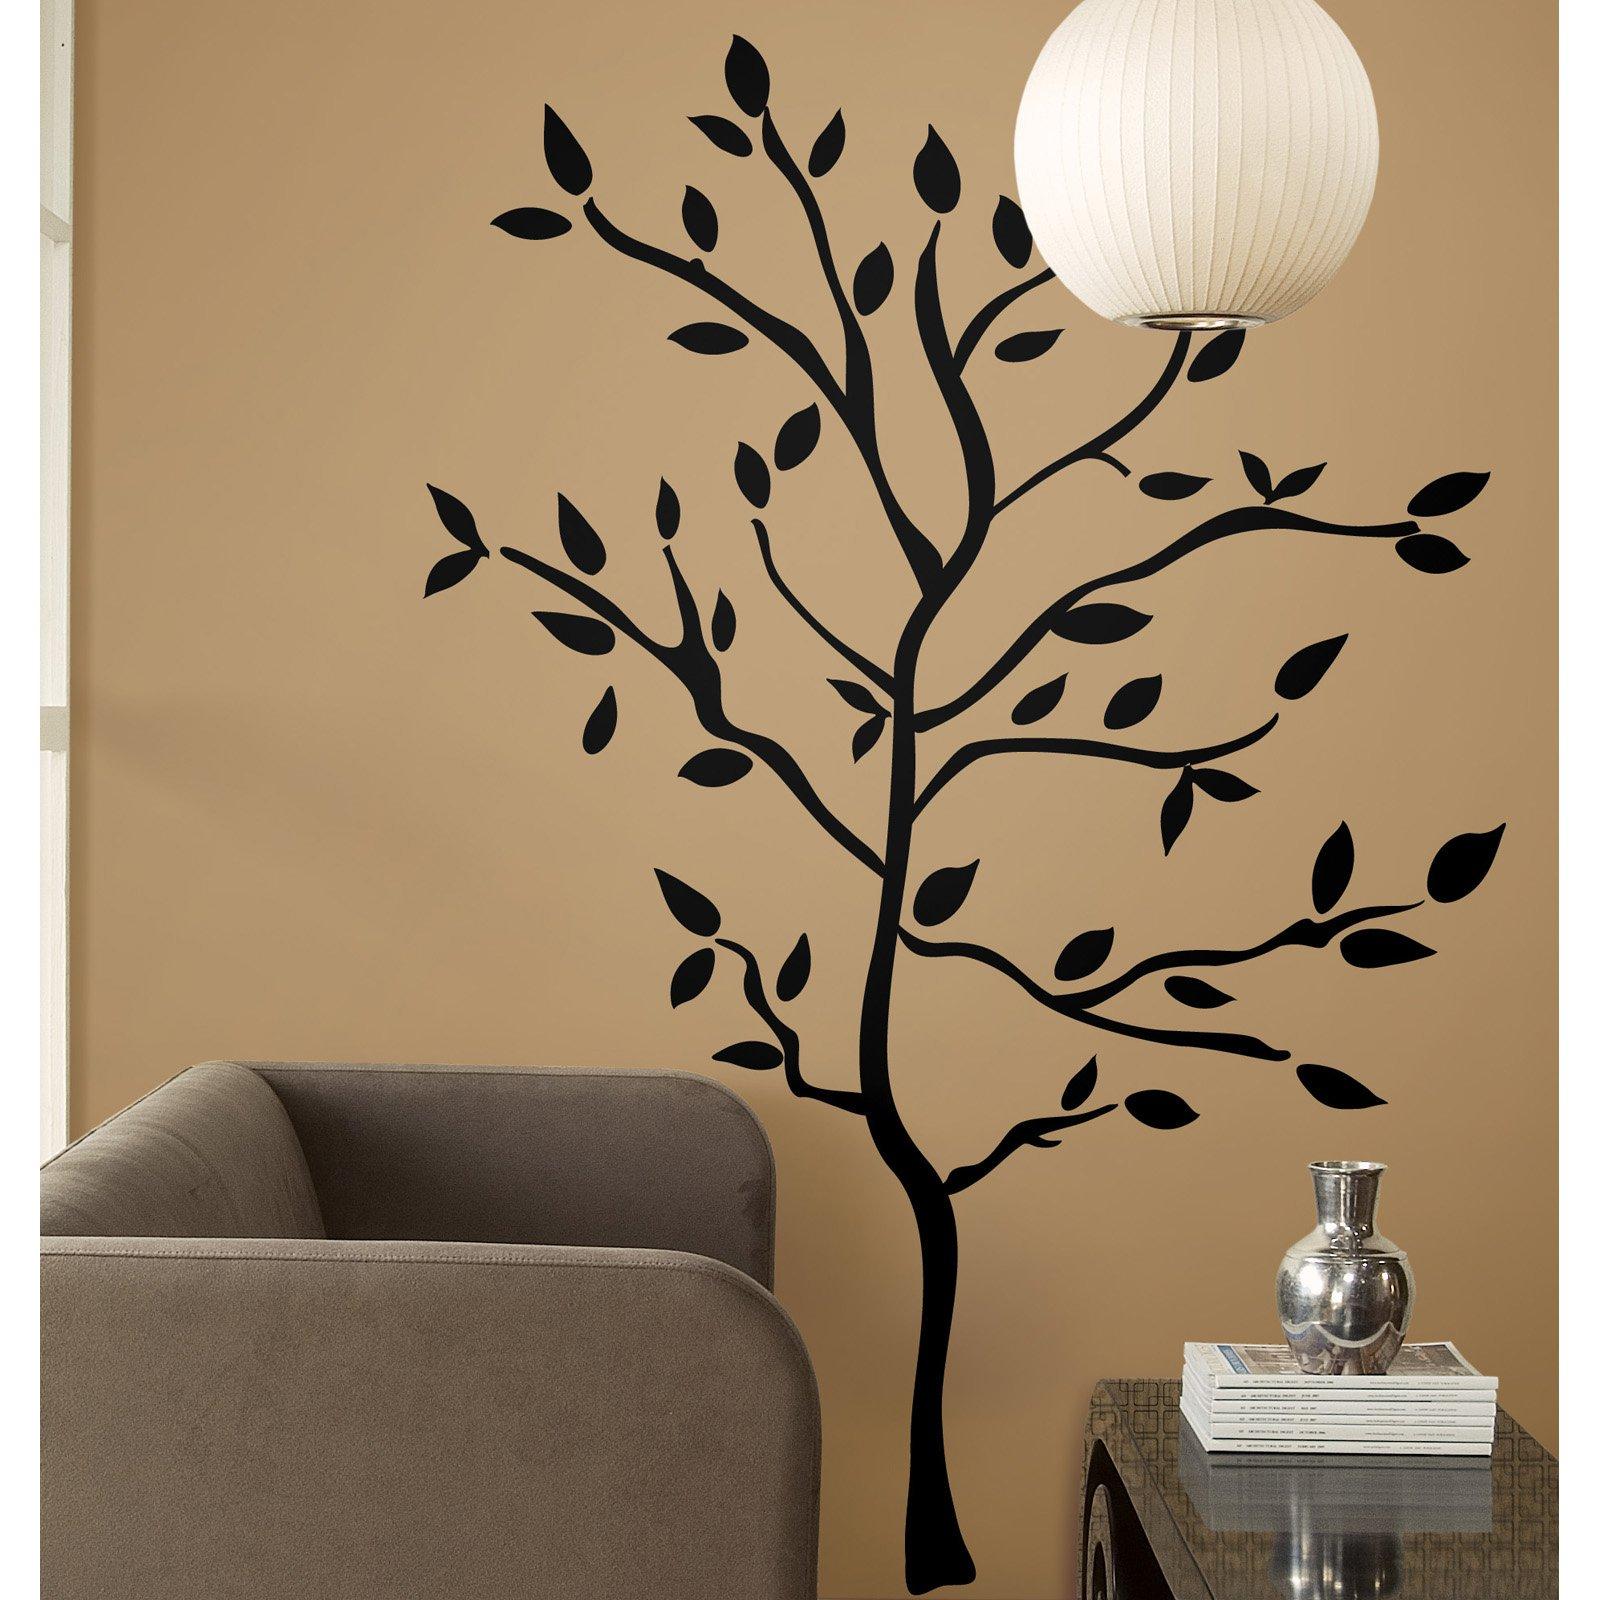 Exceptional Tree Branches Peel And Stick Wall Decals